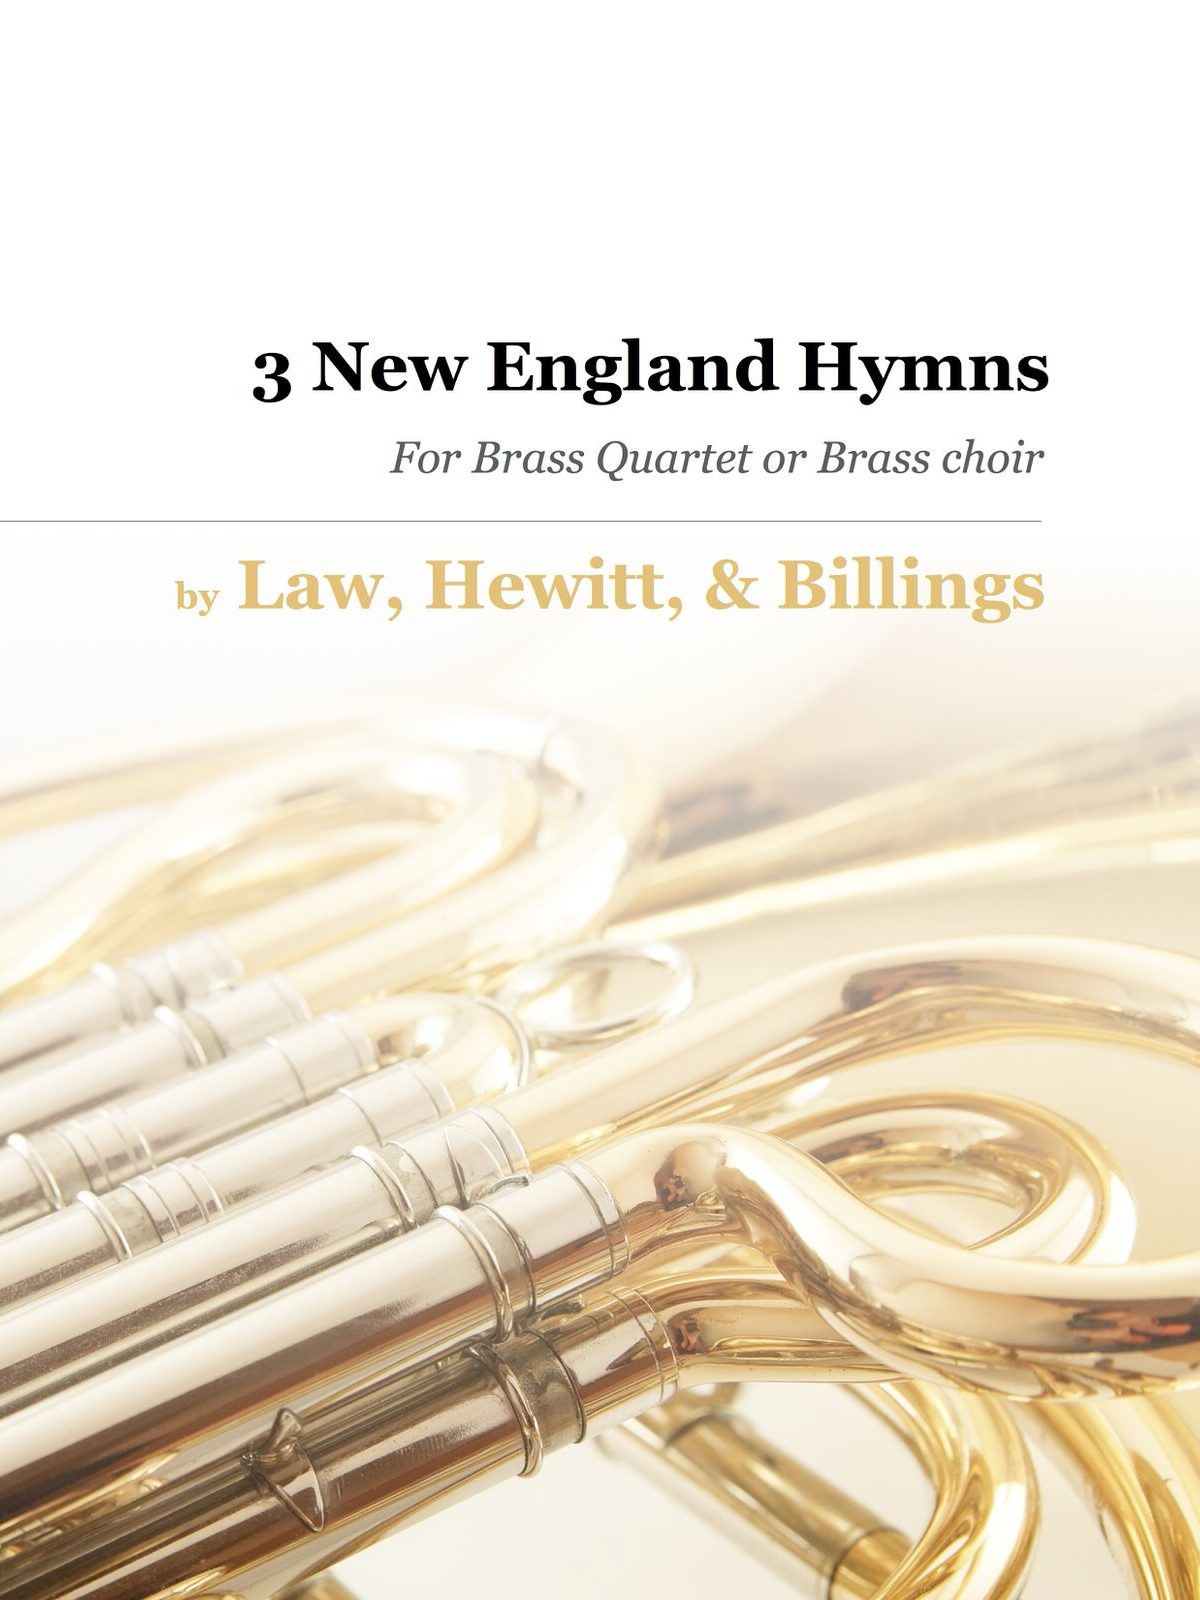 Billings, 3 New England Hymns for 4-Part Brass-p01